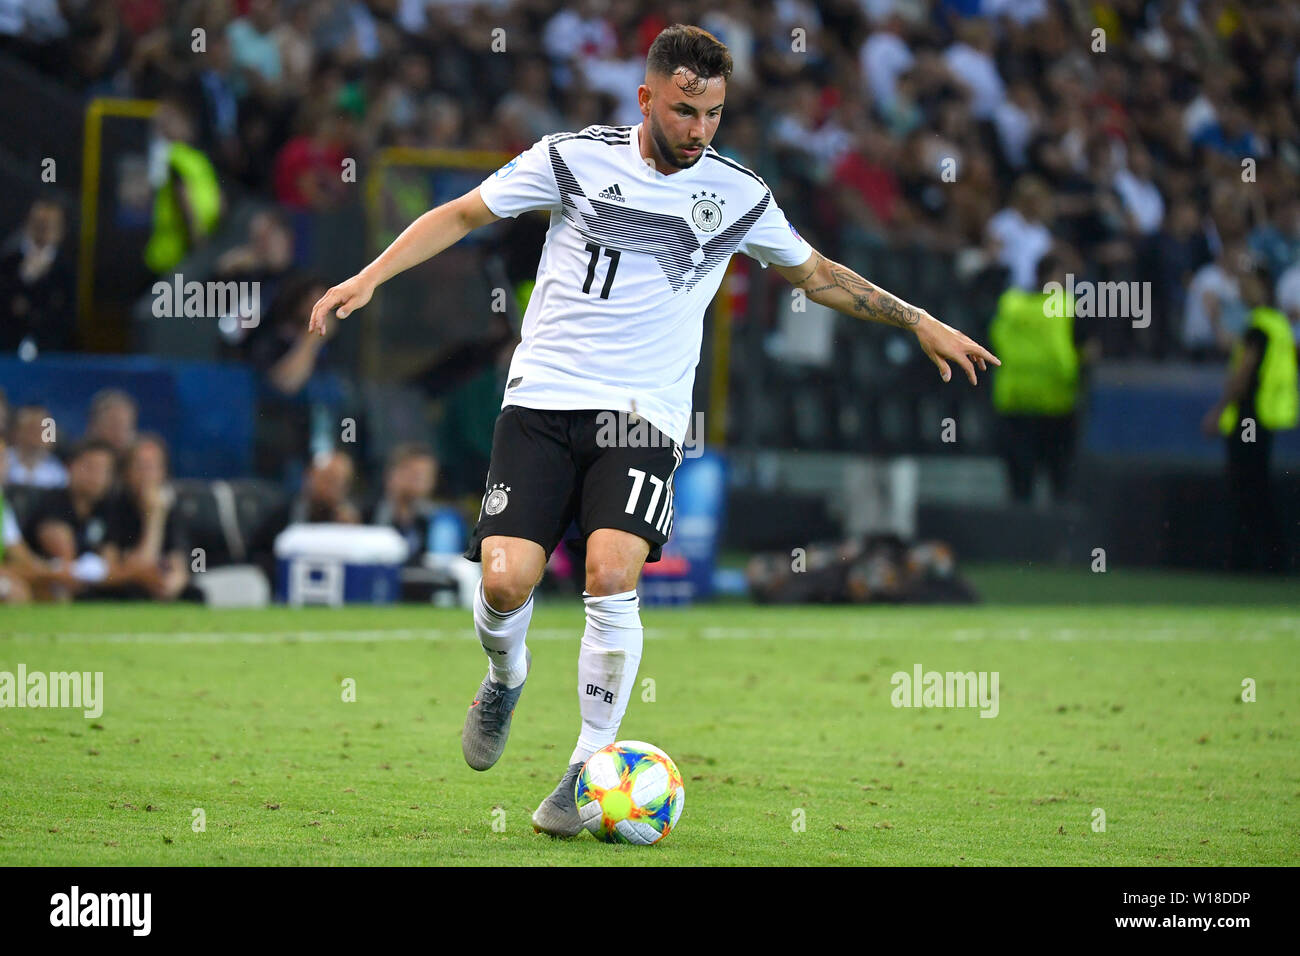 Marco RICHTER (GER), Action, Single Action, Frame, Cut Out, Full Body, Whole Figure. Spain (ESP) - Germany (GER) 2-1, at 30.06.2019 Stadio Friuli Udine. Football U-21, FINALE UEFA Under21 European Championship in Italy/SanMarino from 16.-30.06.2019. | Usage worldwide - Stock Image